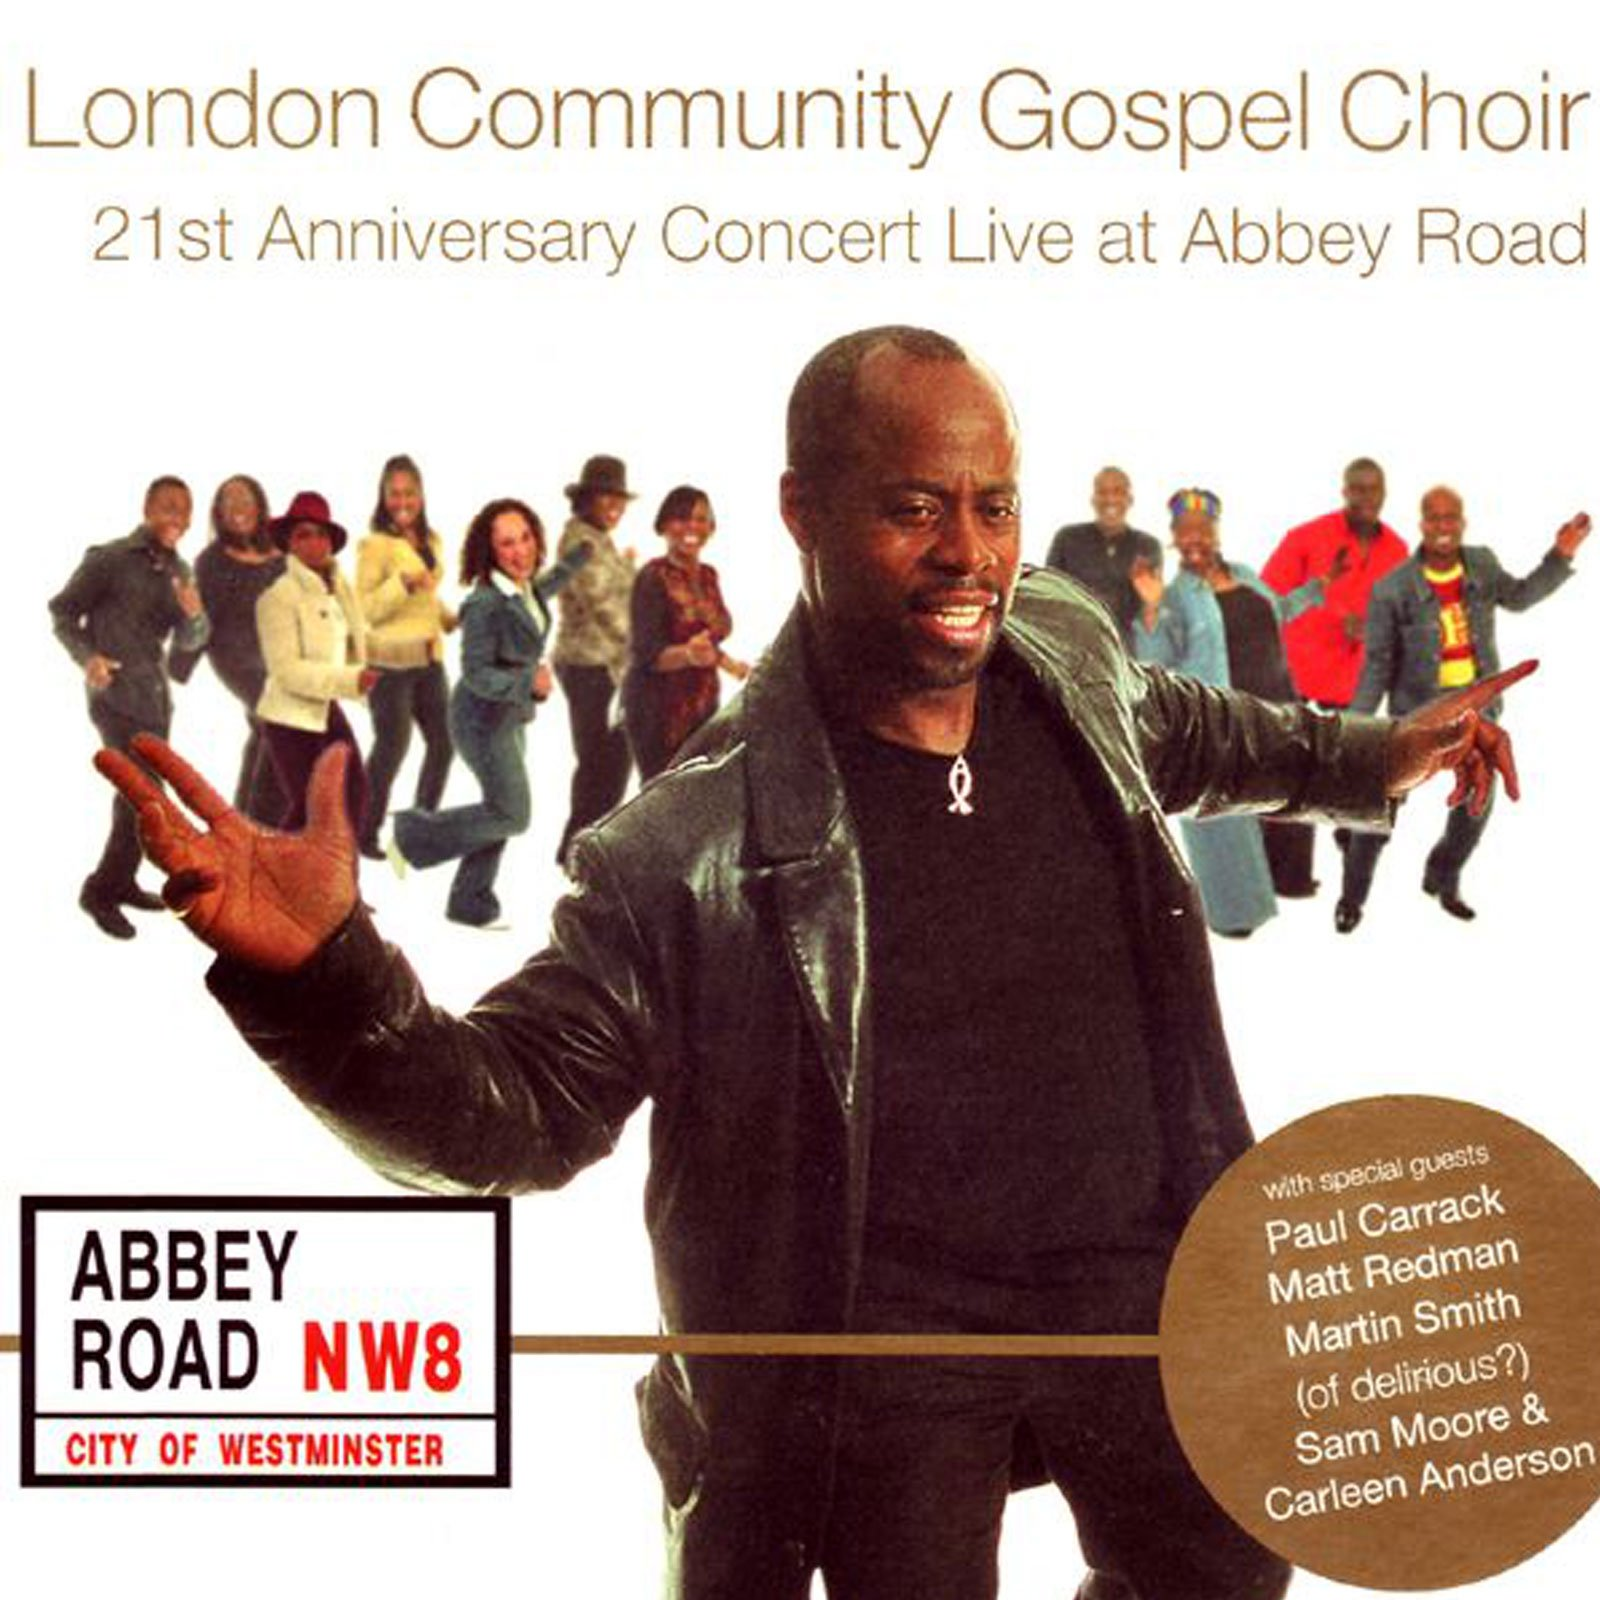 LCGC_21st_Anniversary_Concert_Live_at_Abbey_Road_Cover_1600x1600